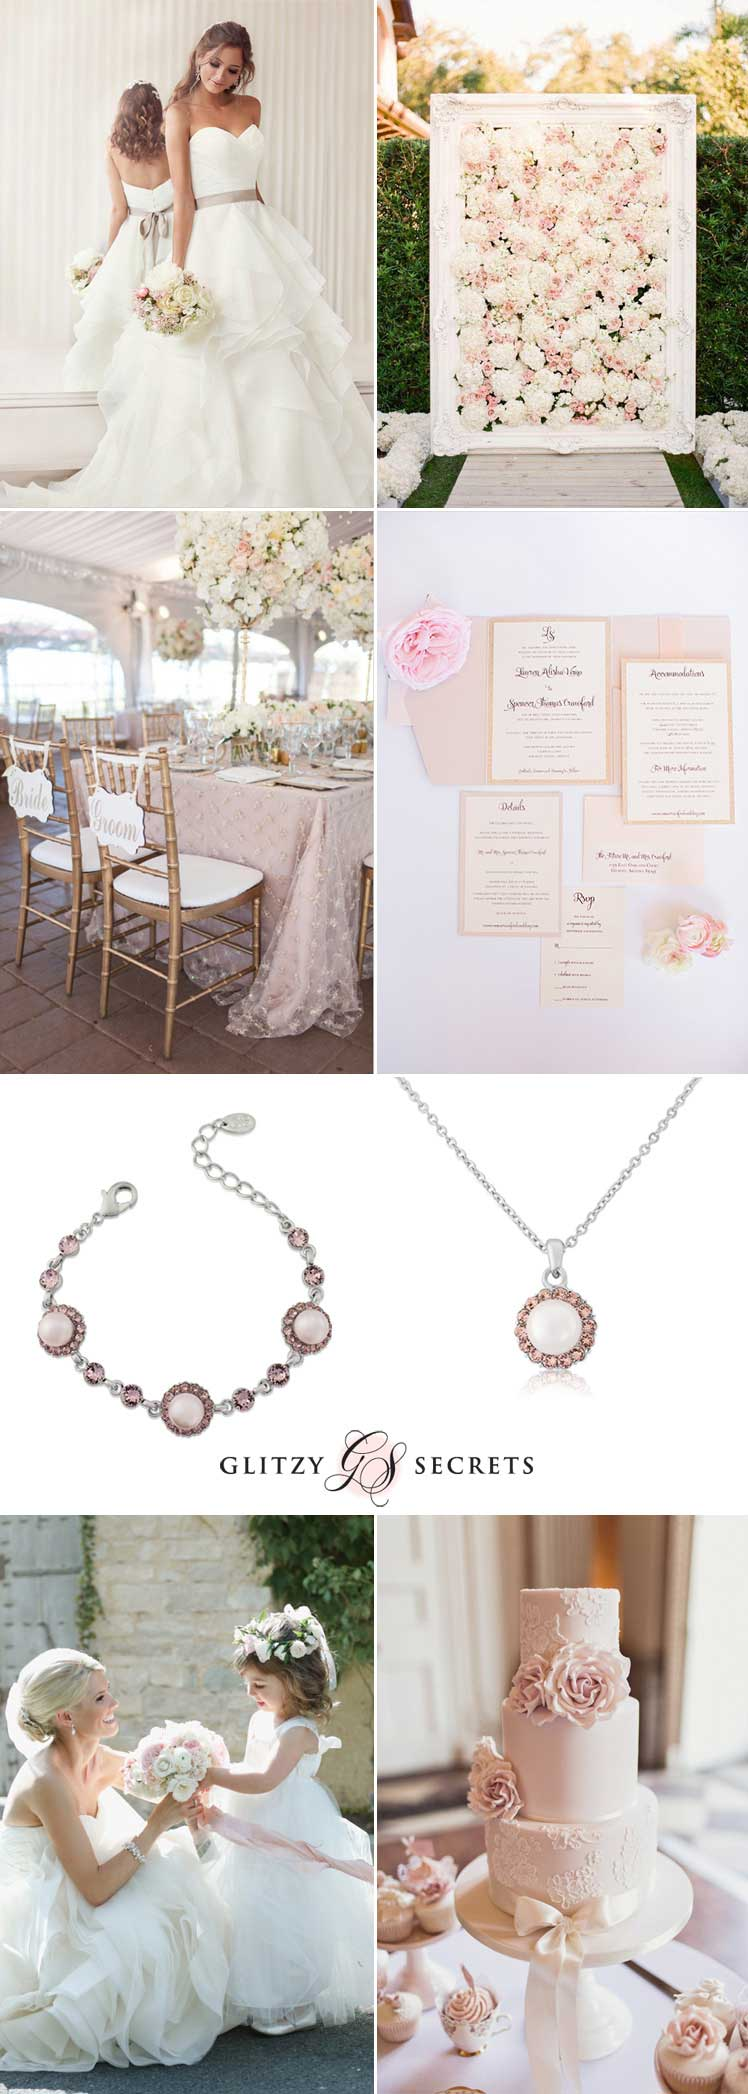 Ivory and blush wedding theme inspiration ideas